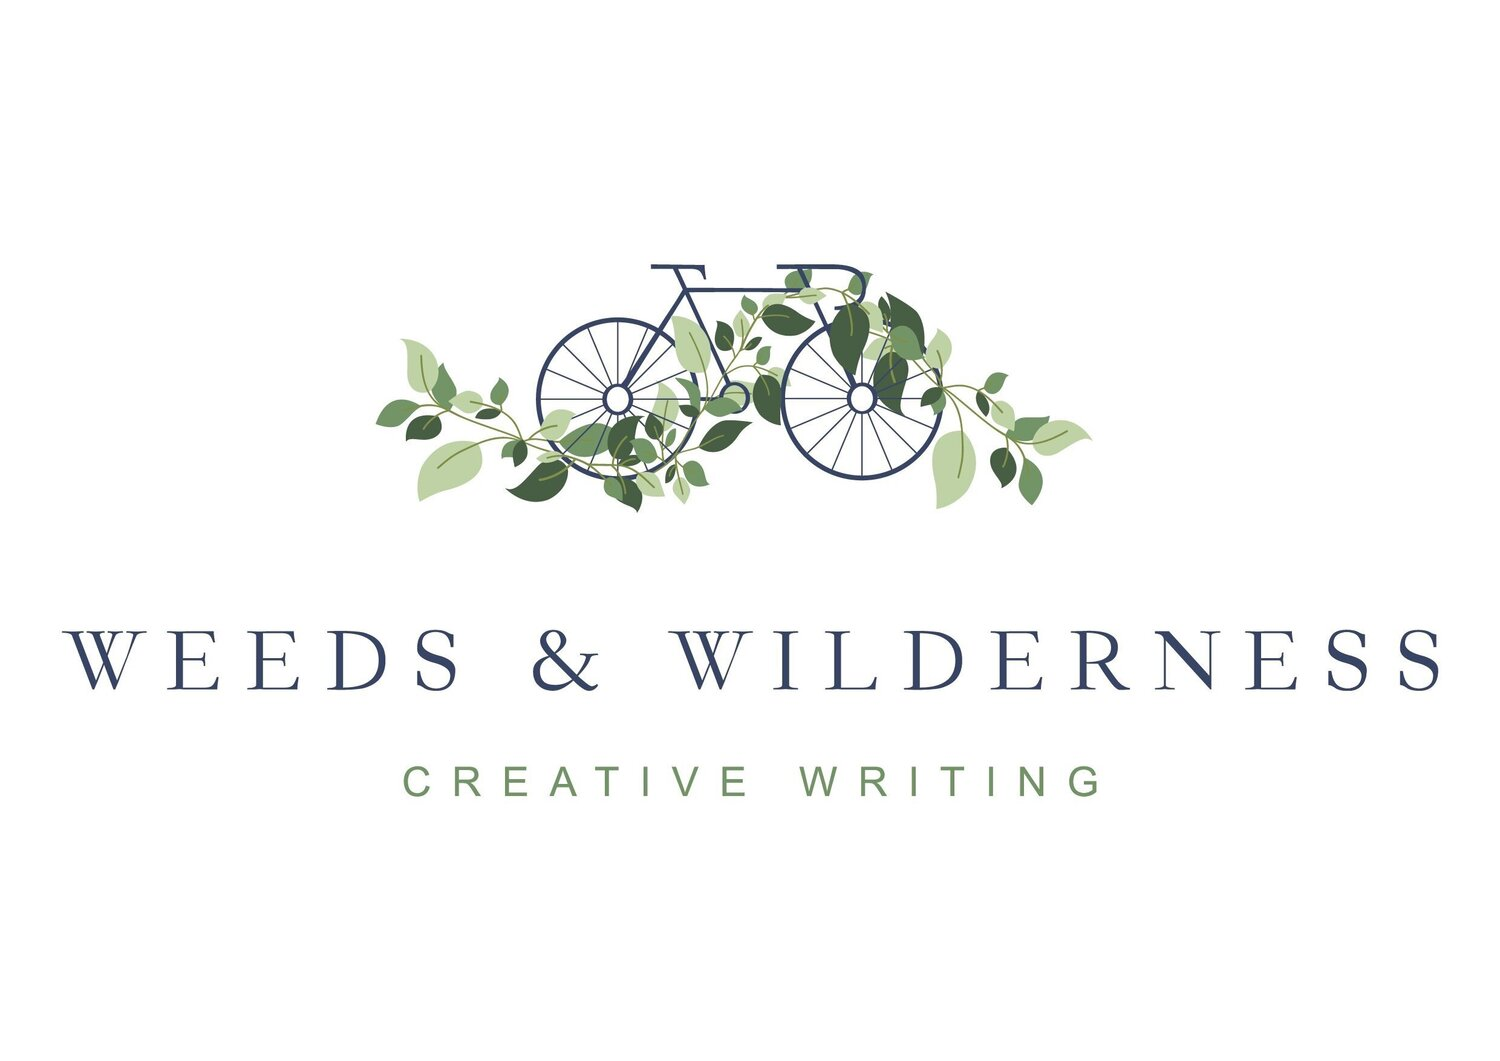 Weeds and Wilderness Creative Writing